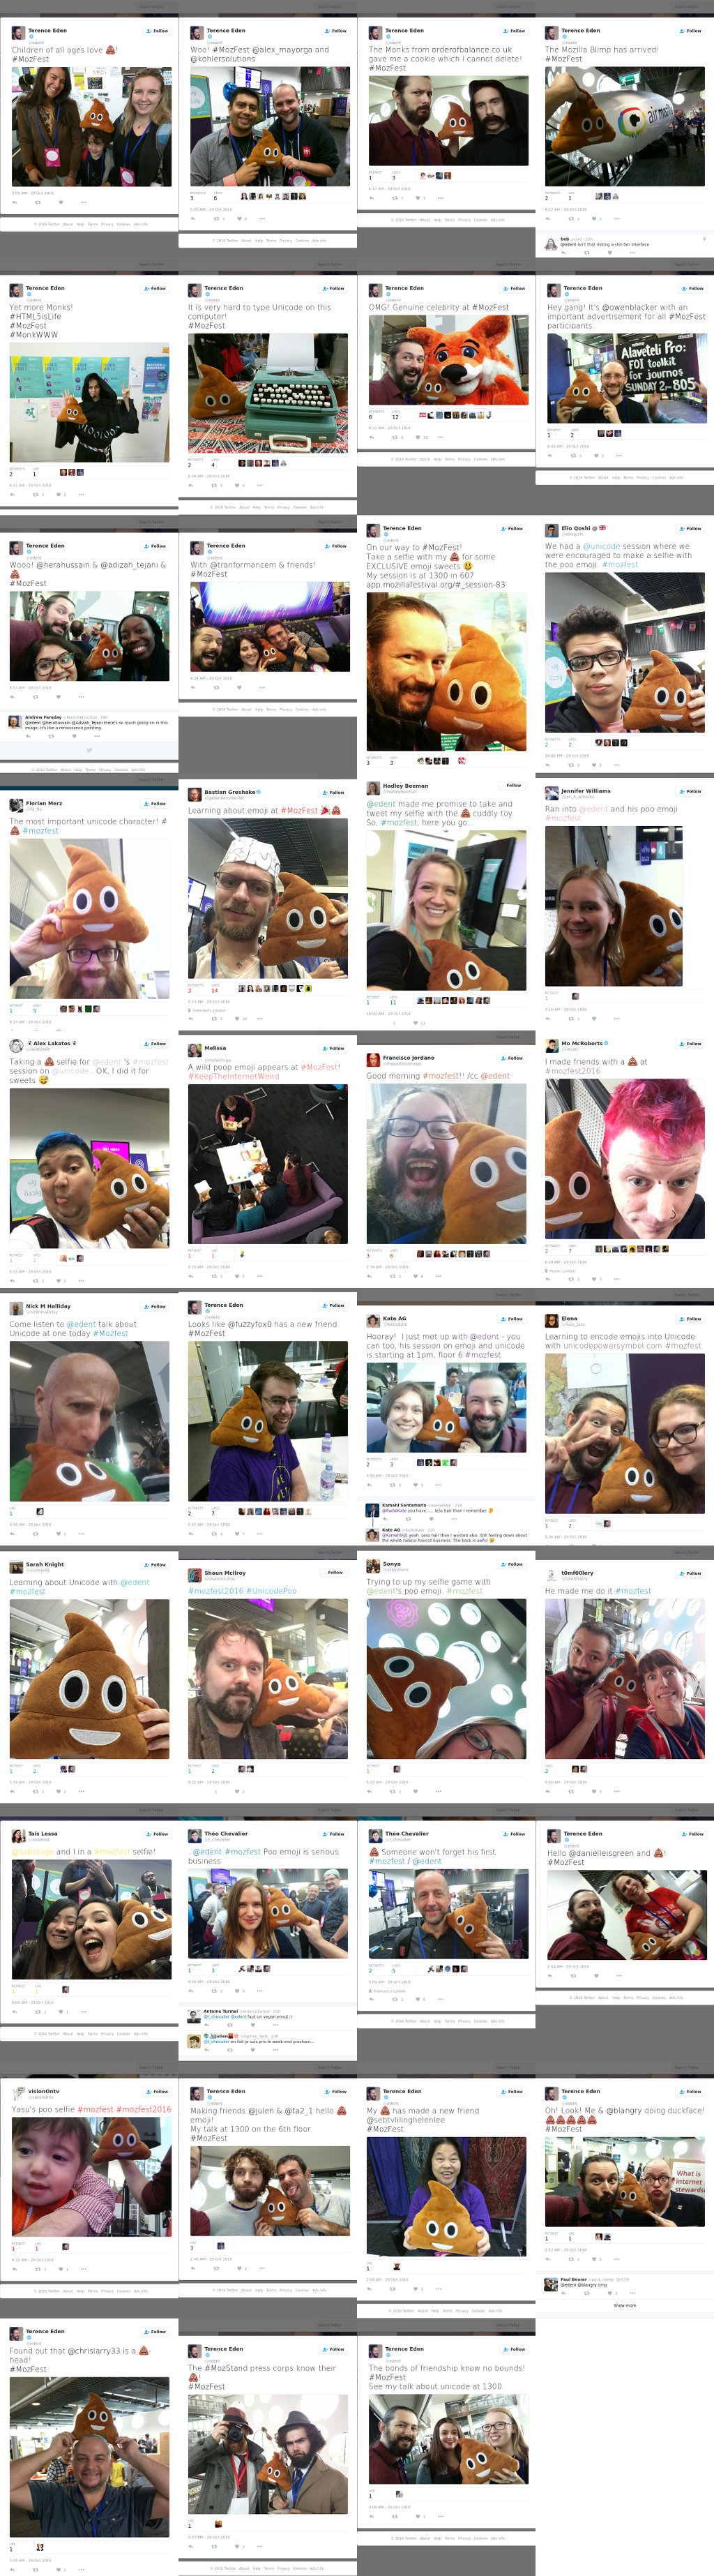 poo emoji montage of tweets